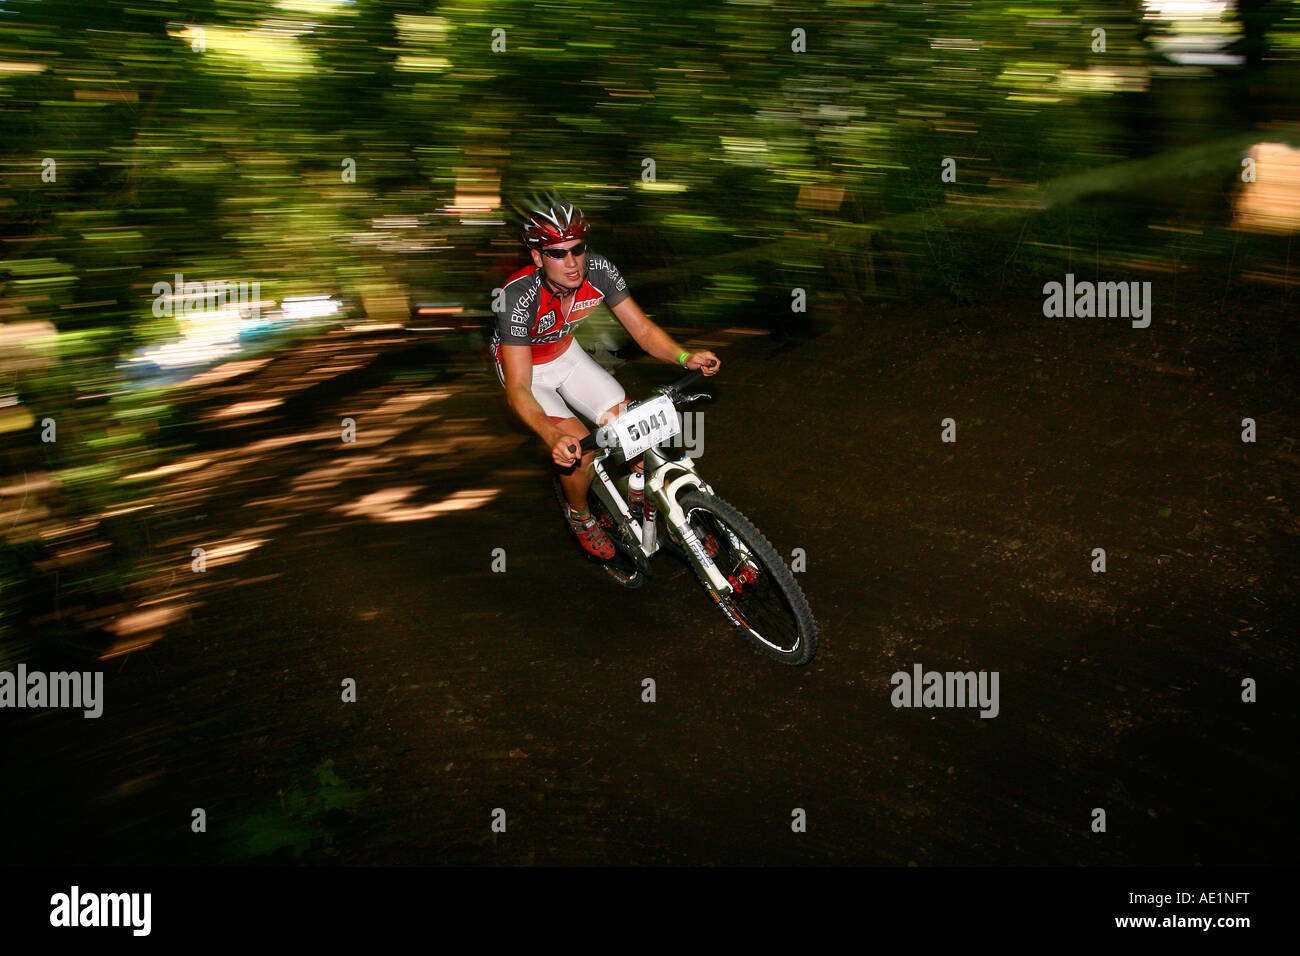 mountain biker (zoomed photography). Photo by Willy Matheisl - Stock Image